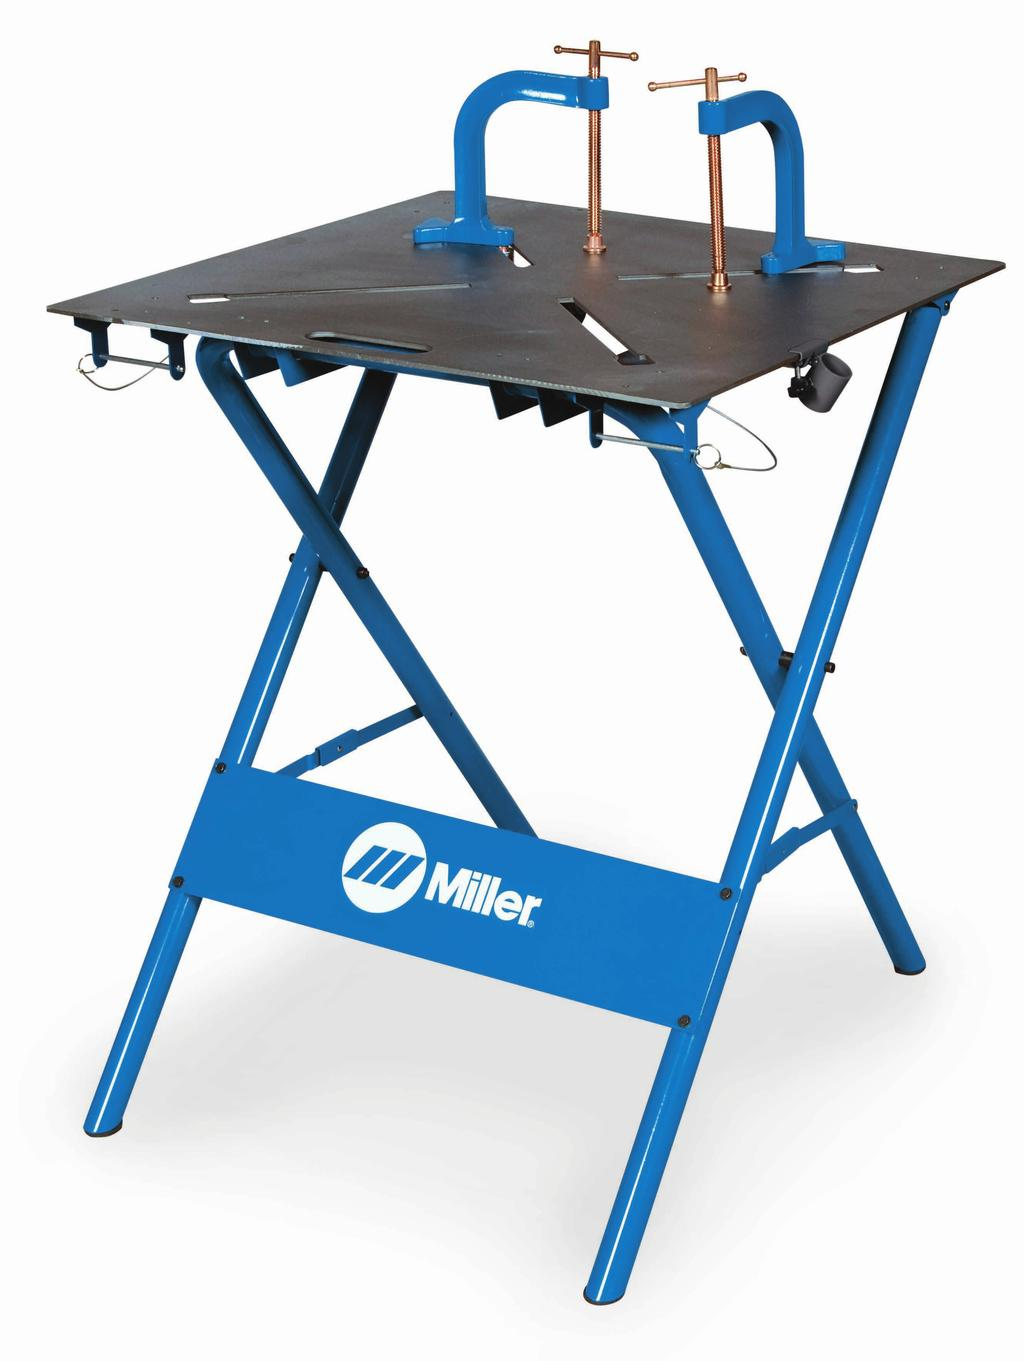 MIL300837 Miller ArcStation 30FX Welding Table $279.99 MIL300850 X-Clamps 5 $39.99 each The Miller ArcStation 30FX is the ideal work surface for the welder who requires portability and space savings.